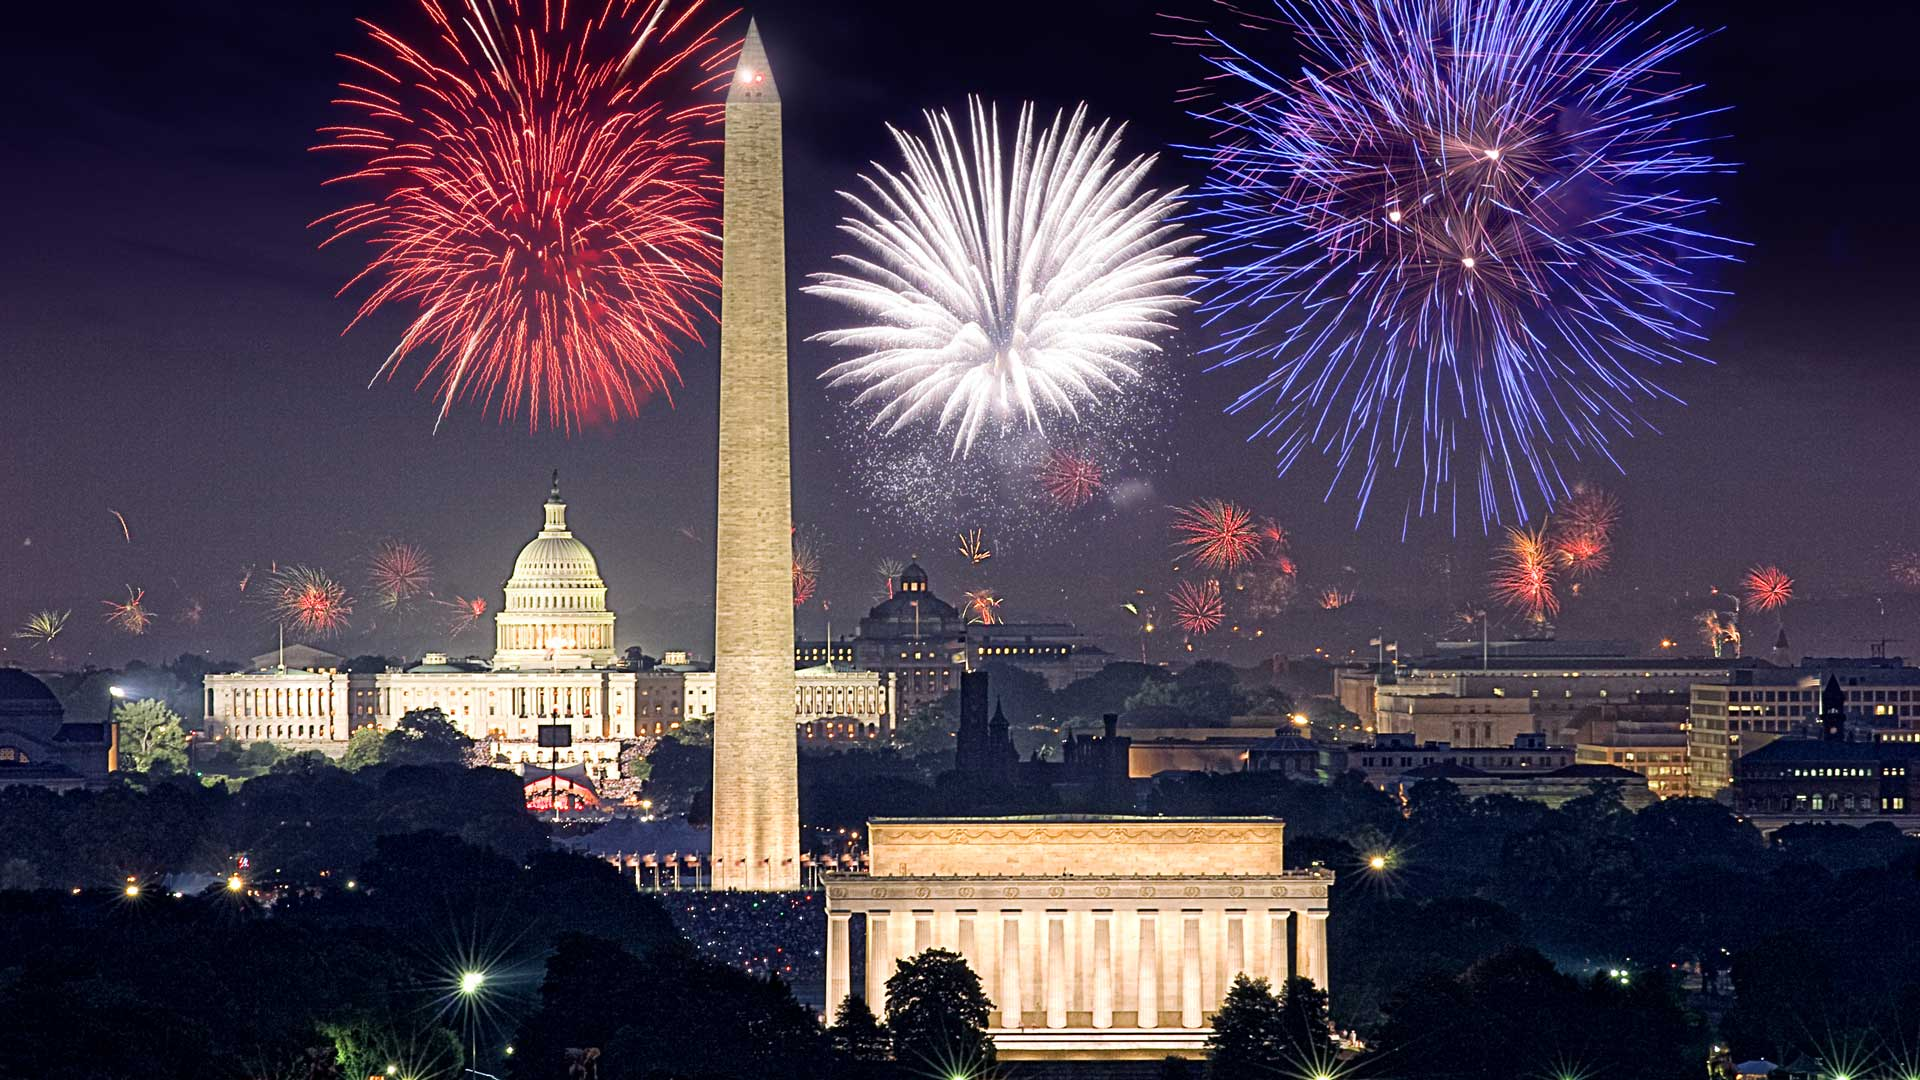 Celebrate our country's 245th birthday with the 41st anniversary broadcast of America's Independence Day celebration for our entire nation.